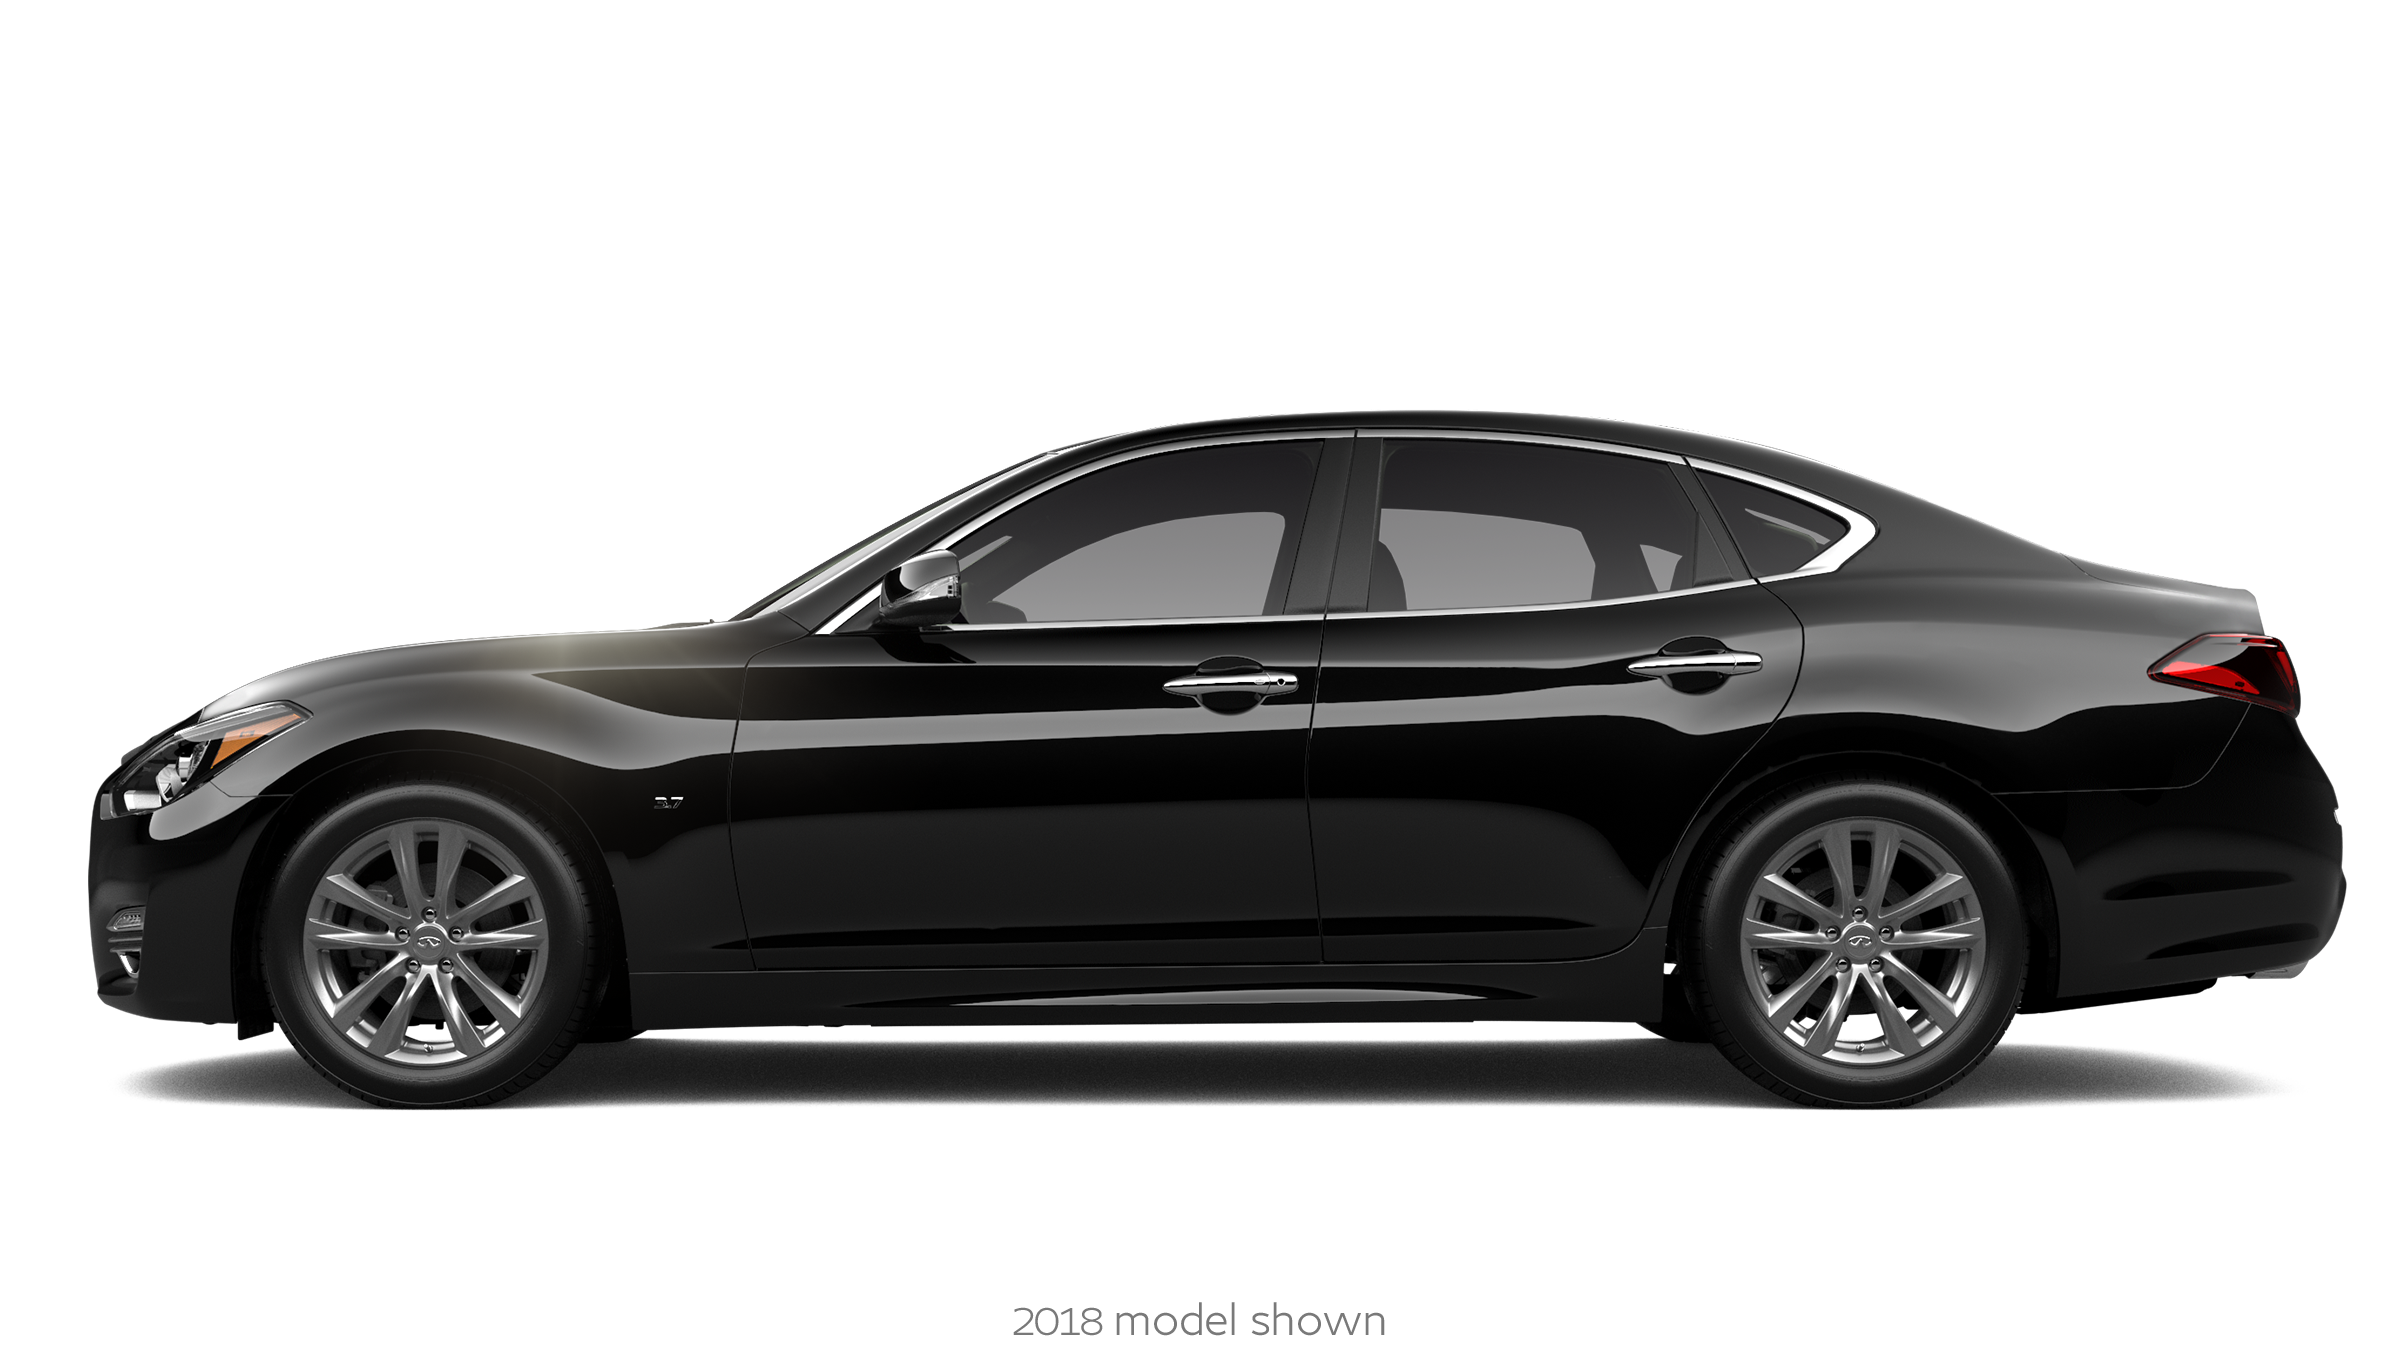 Syracuse All 2019 Infiniti Q70 Vehicles For Sale